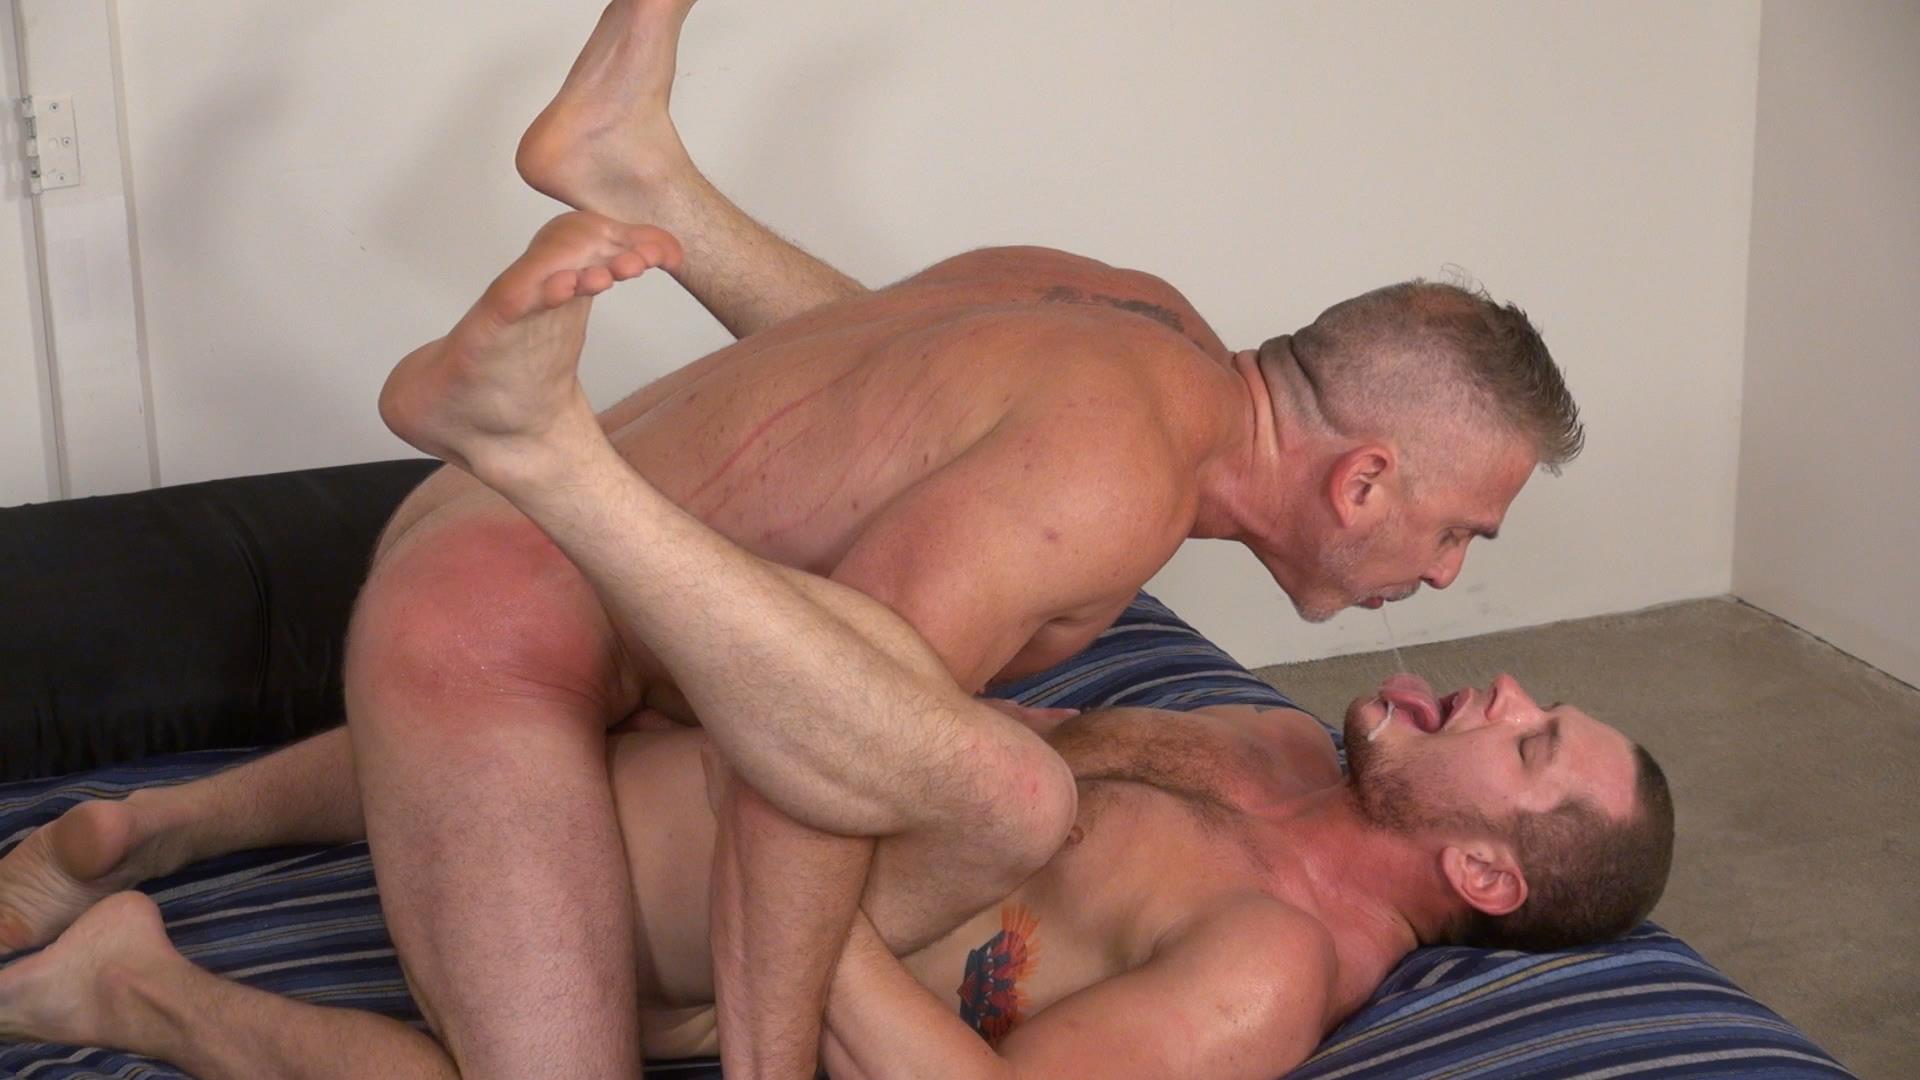 Raw-and-Rough-Sam-Dixon-and-Blue-Bailey-Daddy-And-Boy-Flip-Flip-Bareback-Fucking-Amateur-Gay-Porn-06 Blue Bailey Flip Flop Barebacking With A Hung Daddy